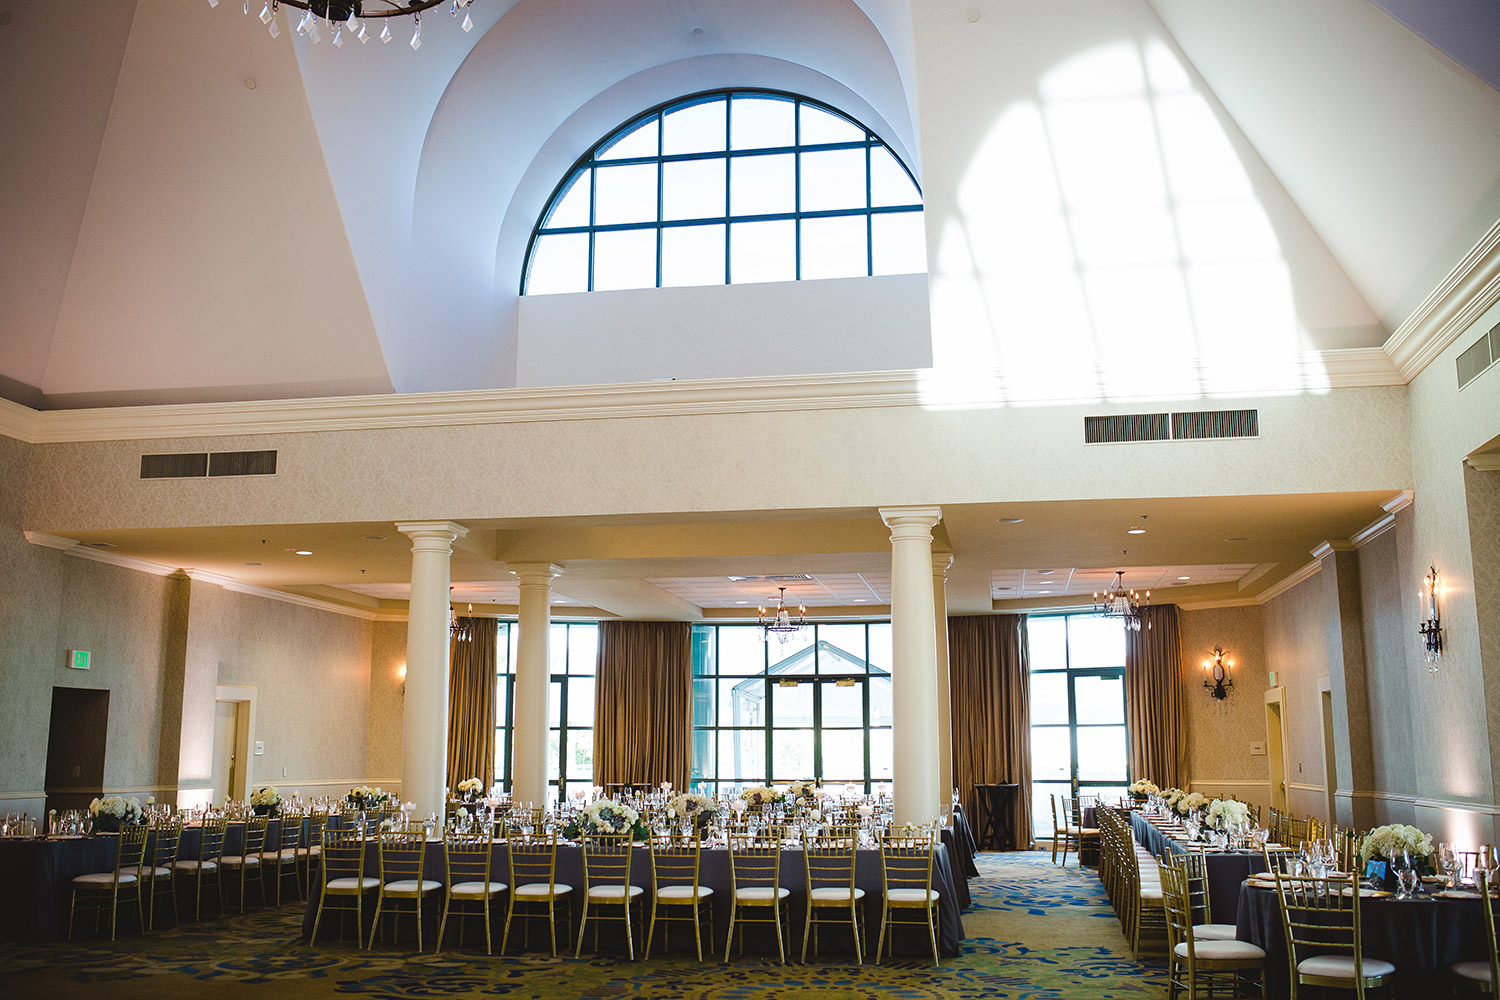 River Crest Country Club interior ballroom reception with tall arched ceilings